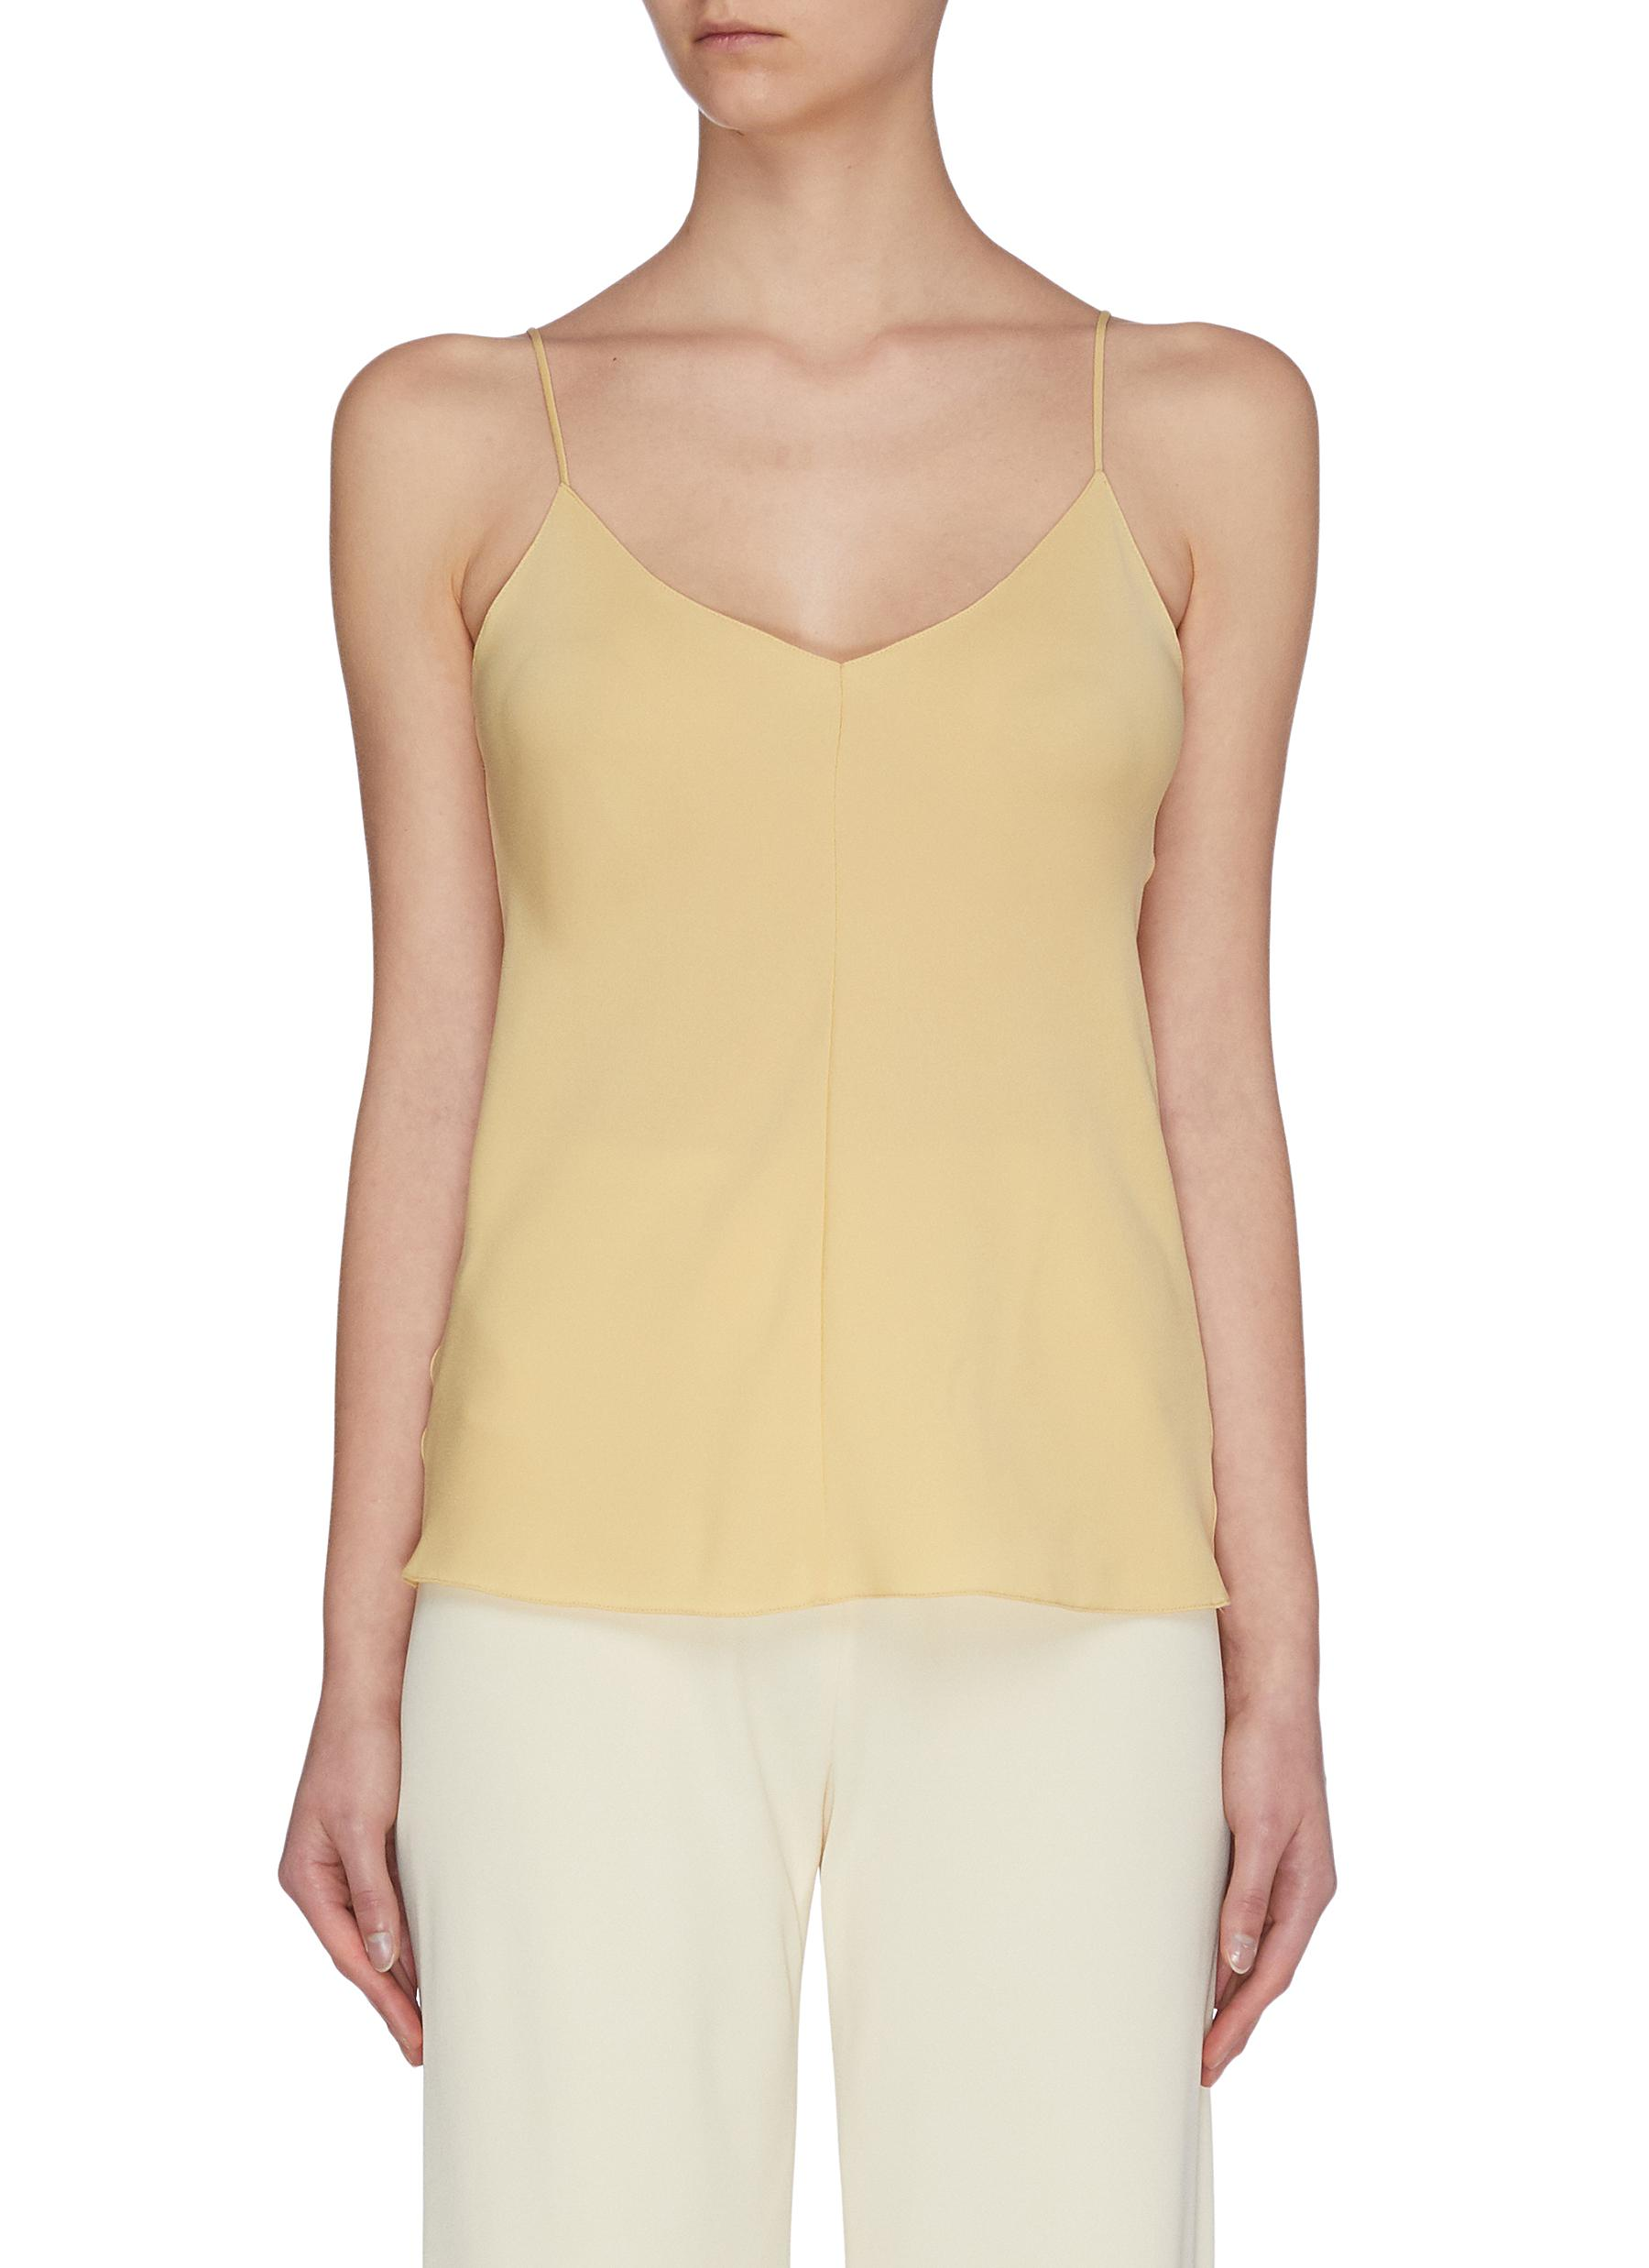 Buy The Row Tops 'Eda' silk georgette V-neck camisole top